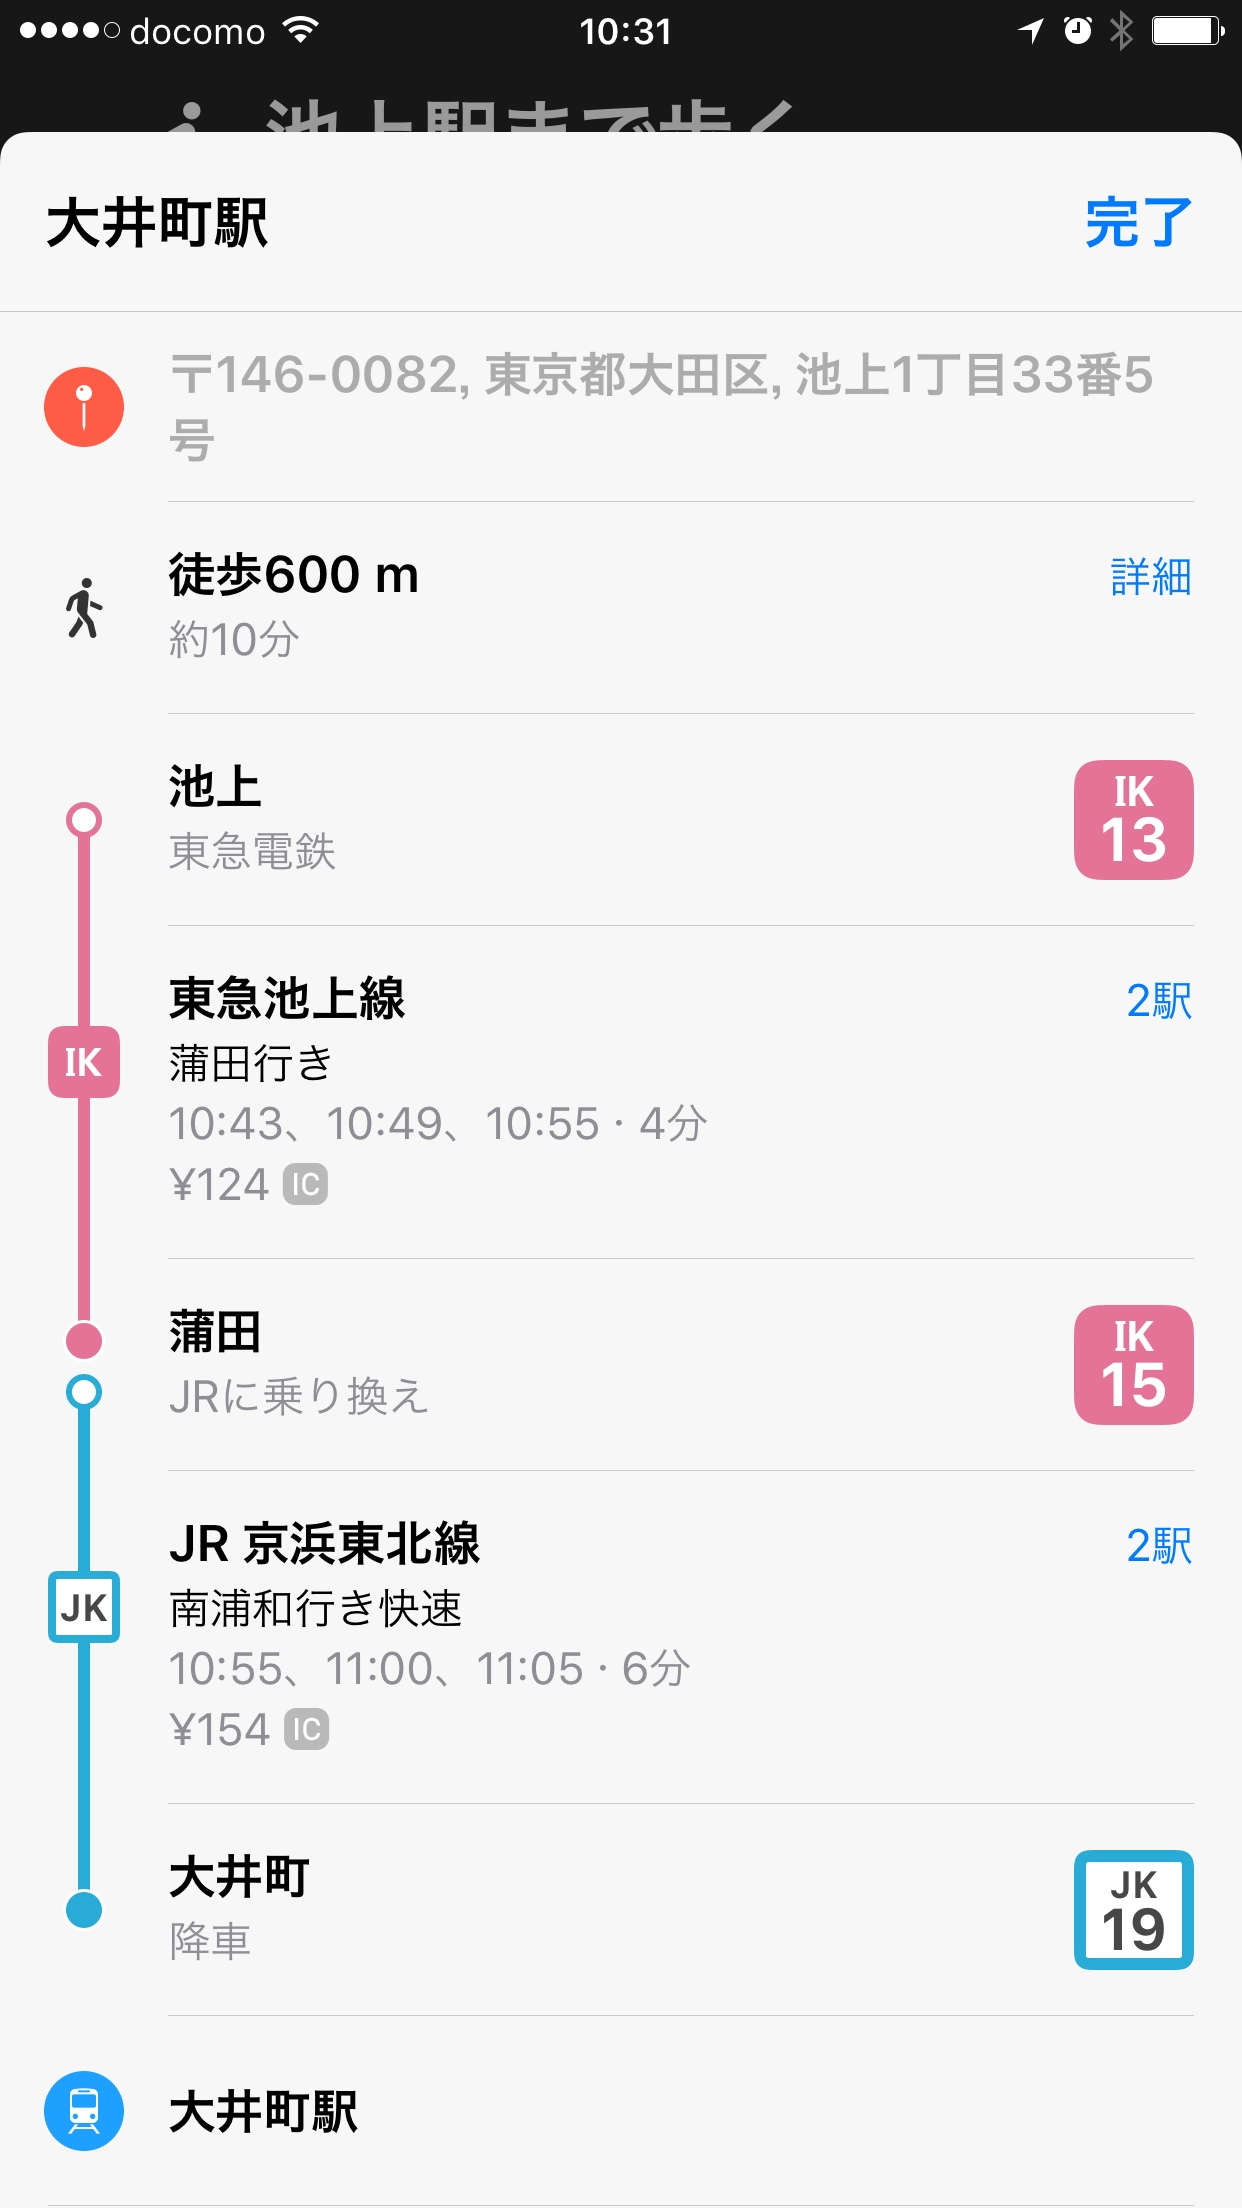 Apple is the only one to use station and train line numbering.